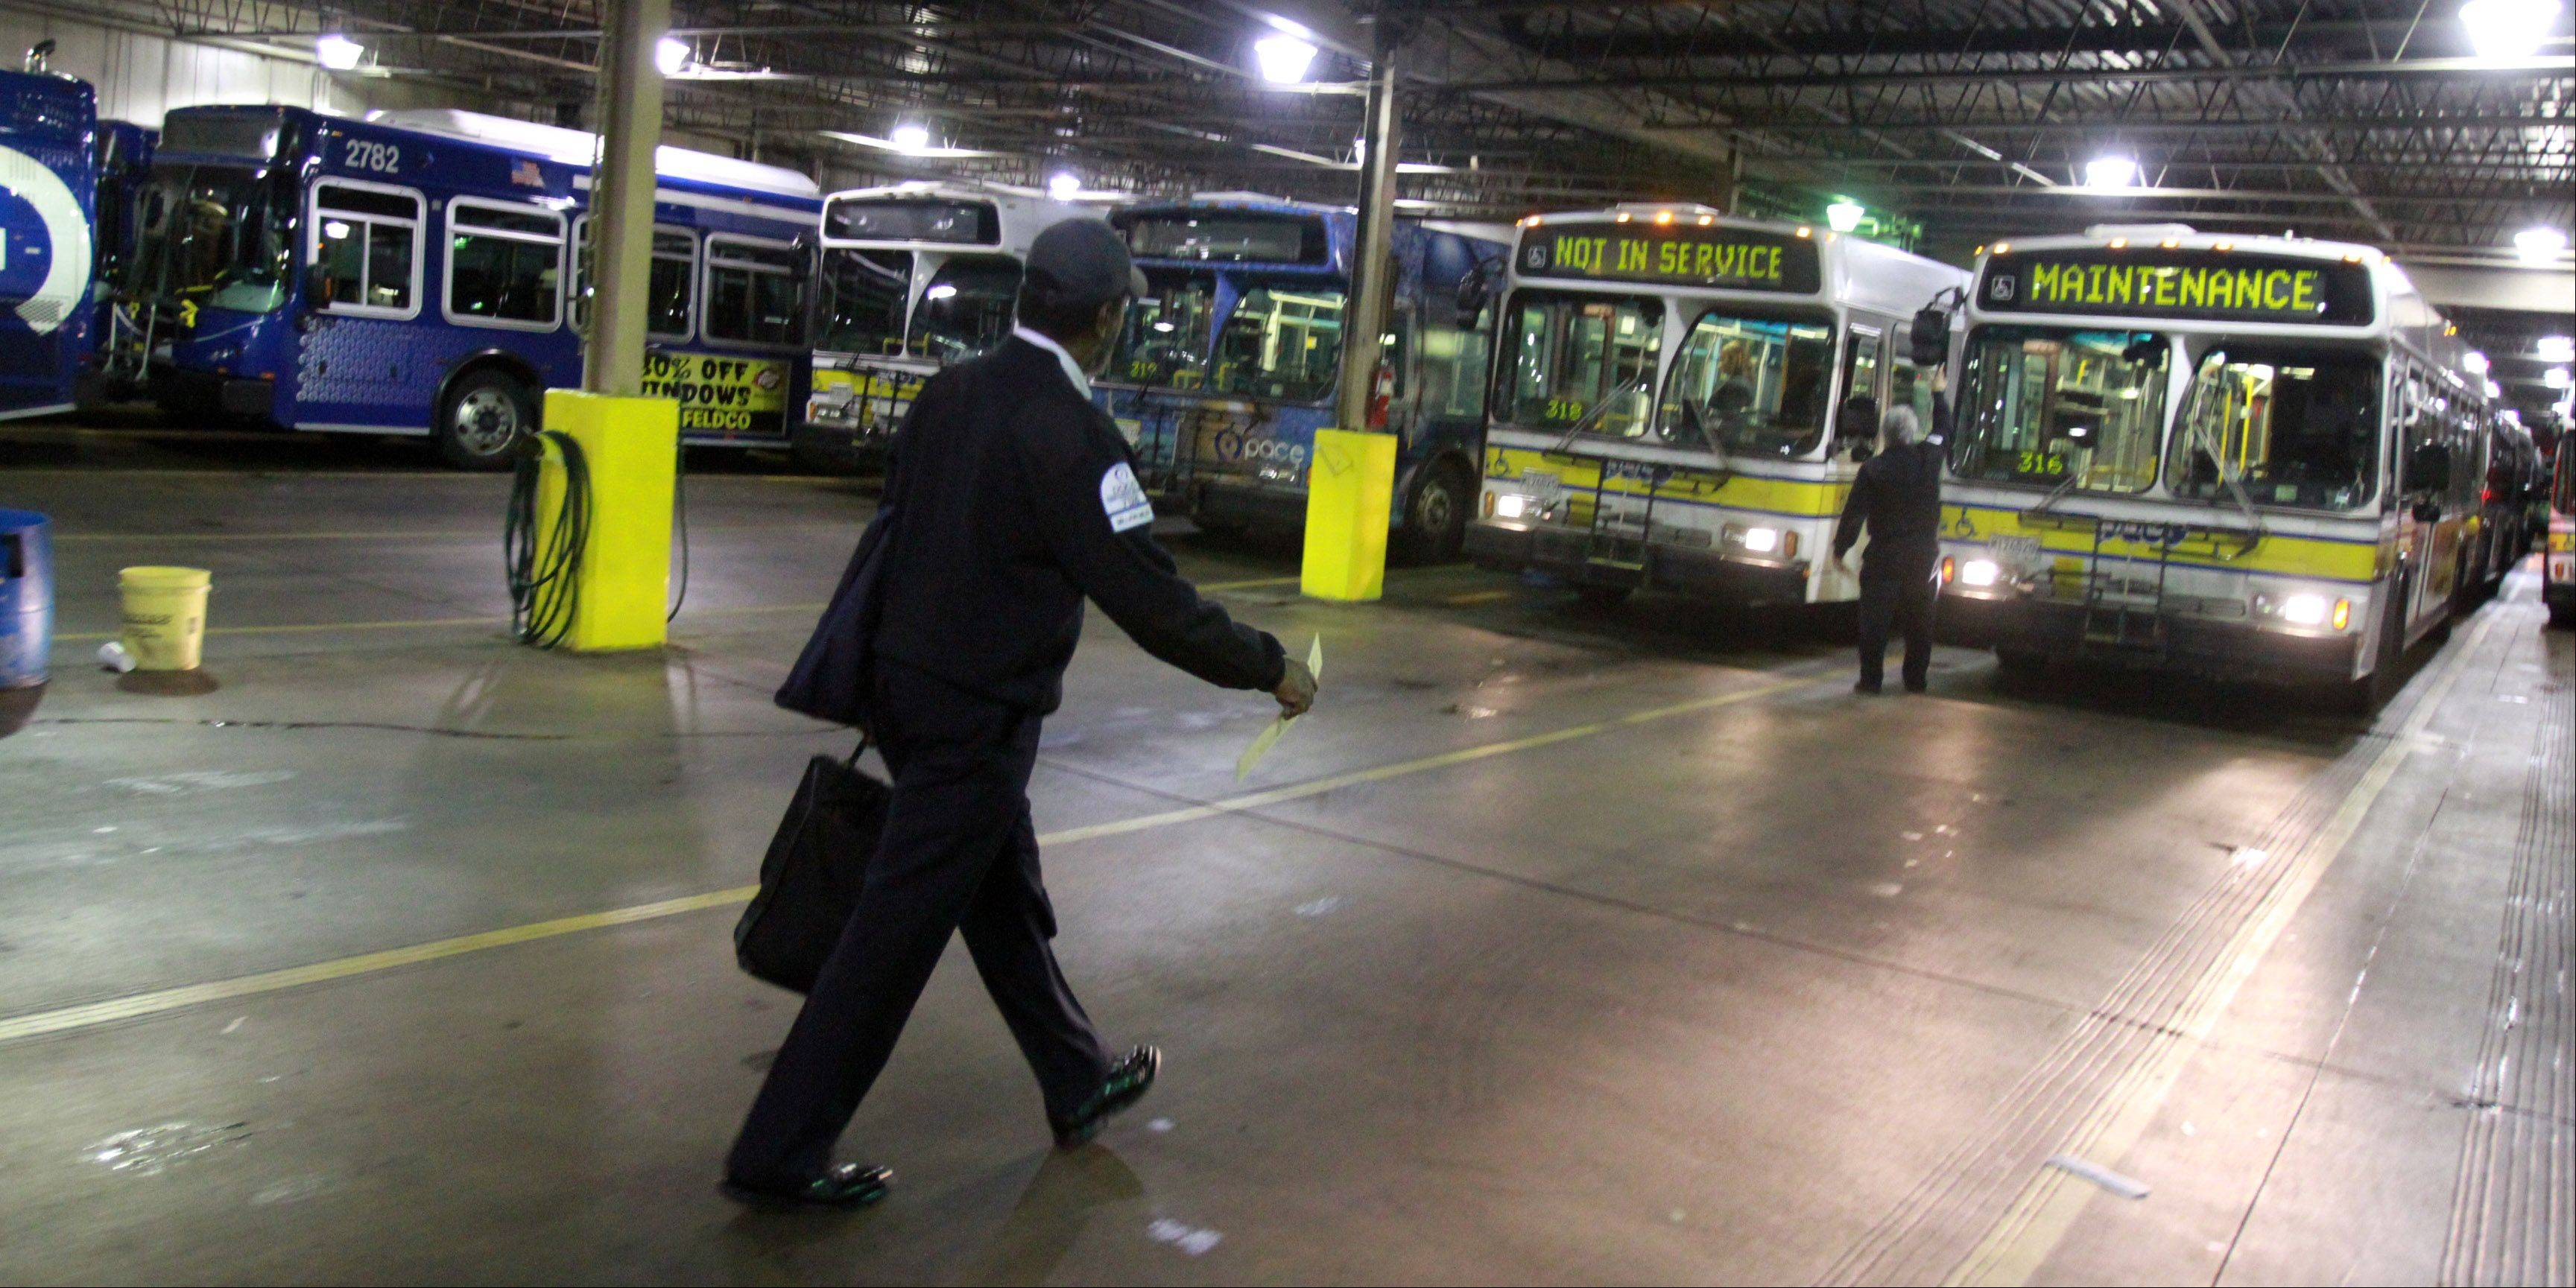 Michael Brown walks through the Pace Northwest Division garage to inspect his bus at 5:30 a.m. before starting his shift.